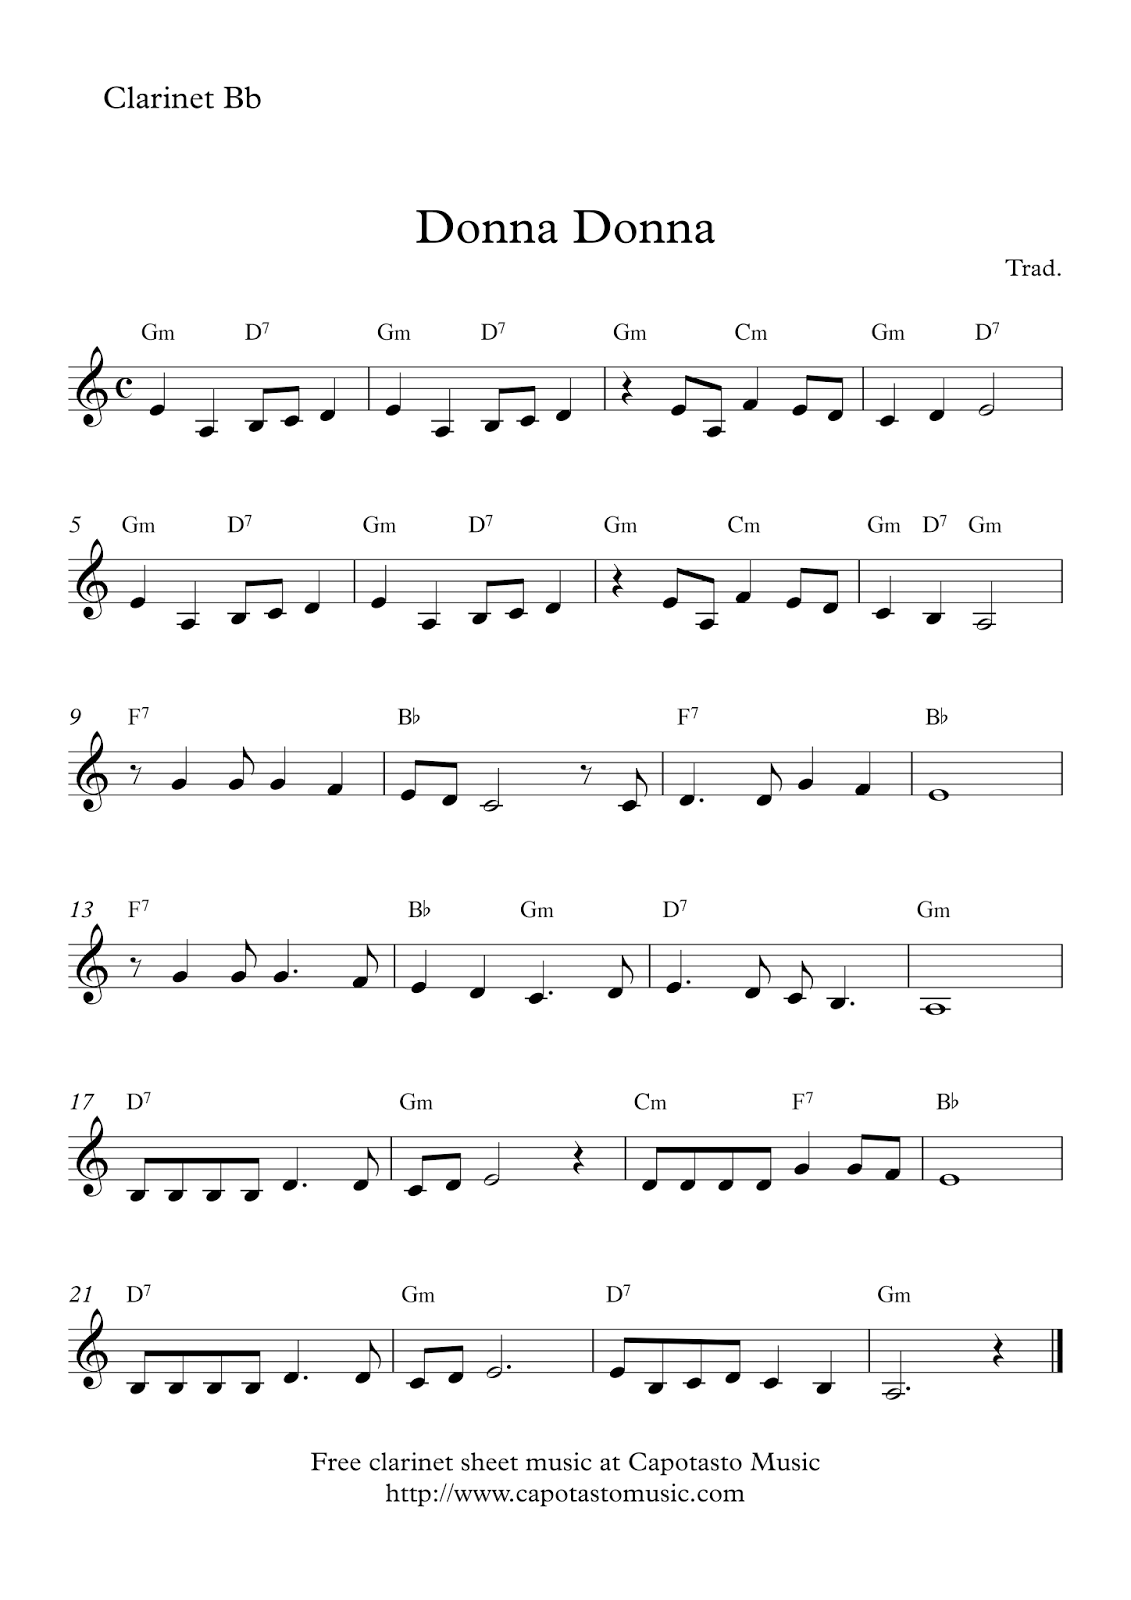 Donna Donna Free Clarinet Sheet Music Partituras Pinterest